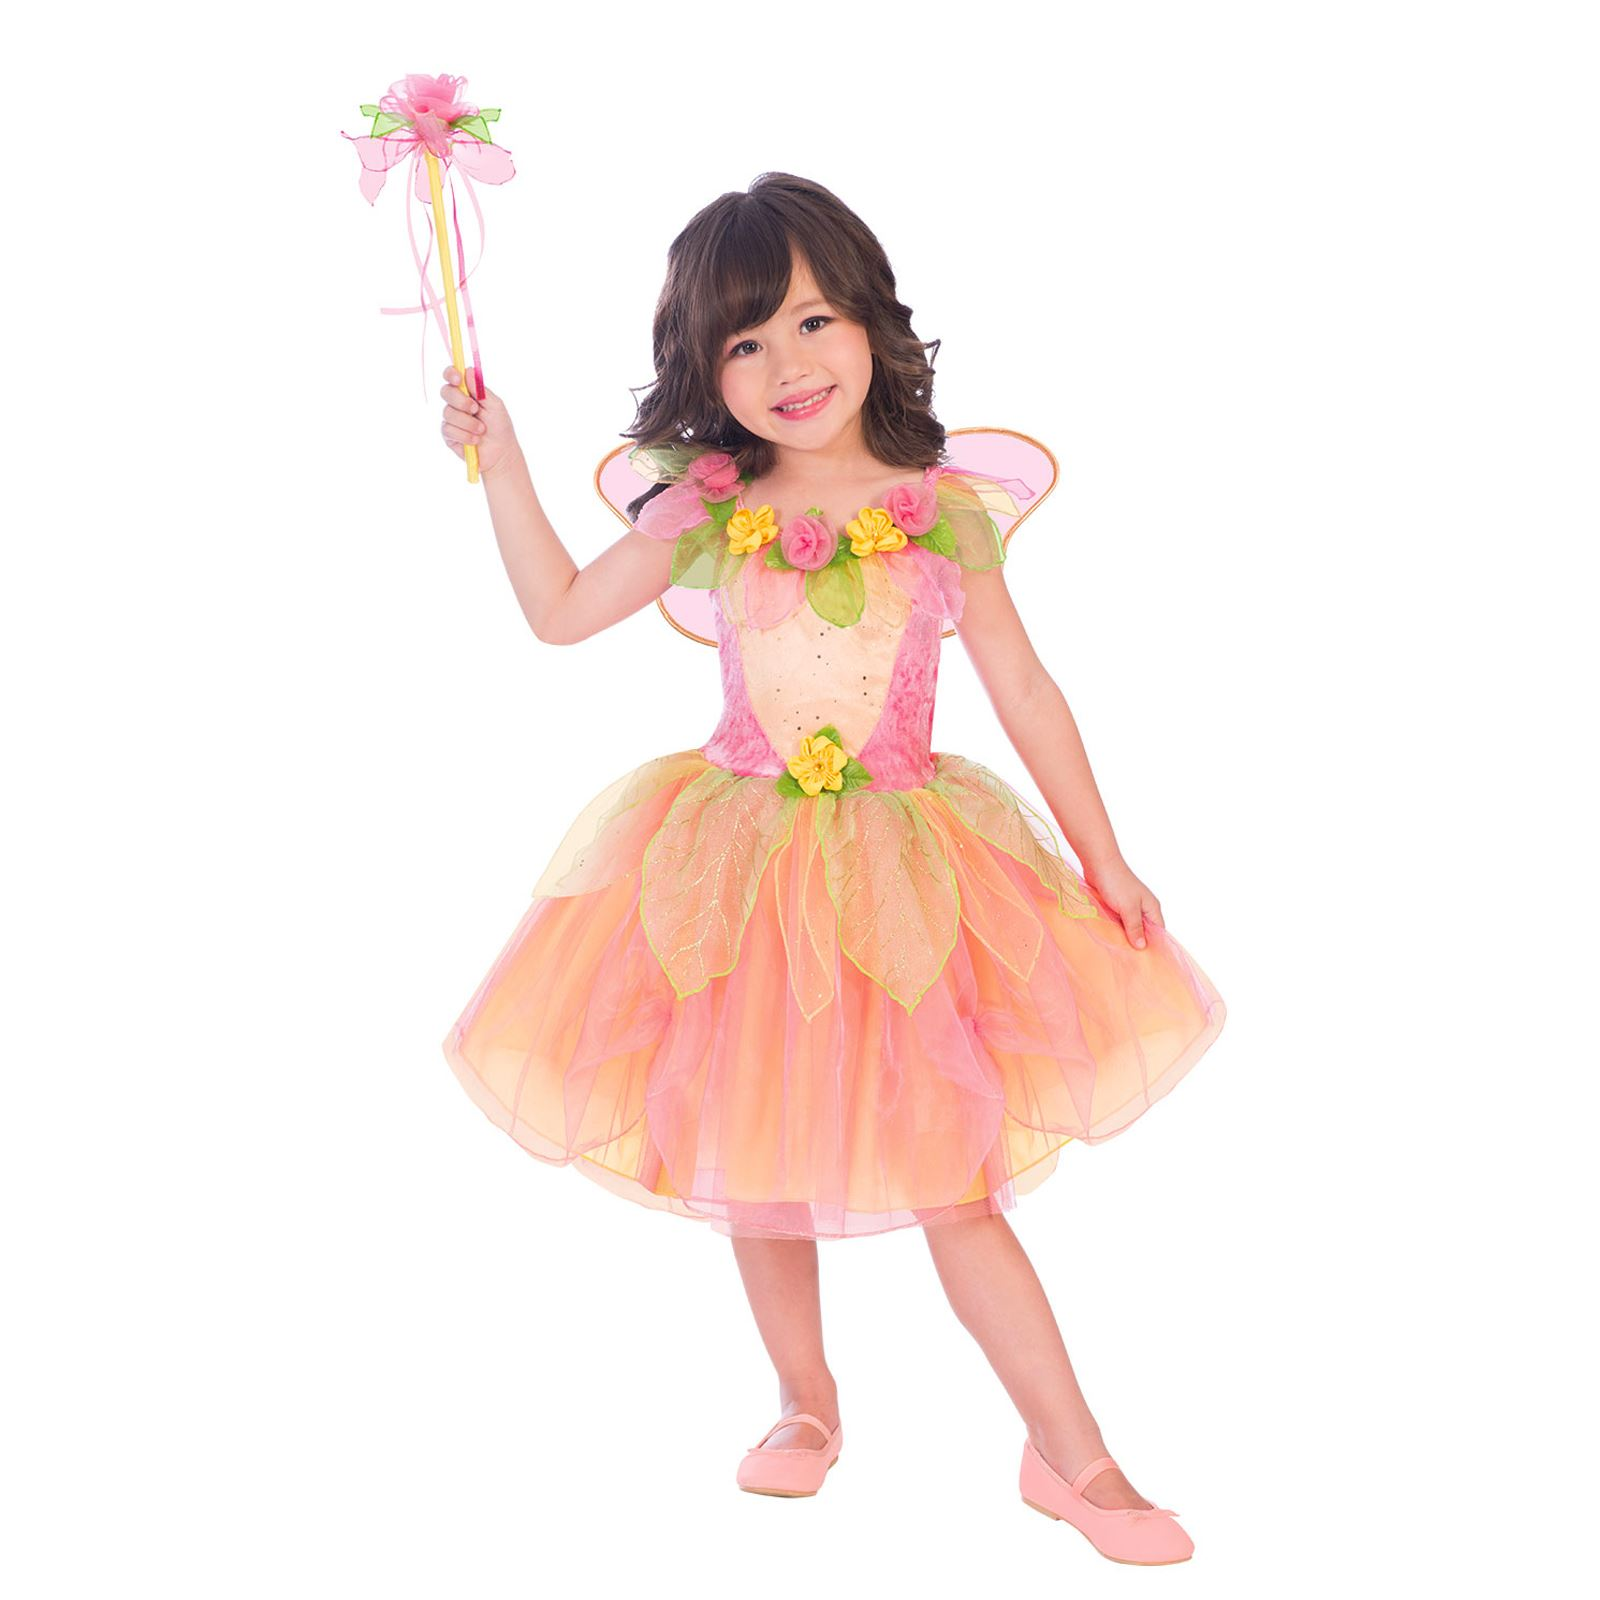 55aad1fc399 Details about Girls Spring Peach Garden Fairy Fancy Dress Book Fairytale  Party Costume Kids